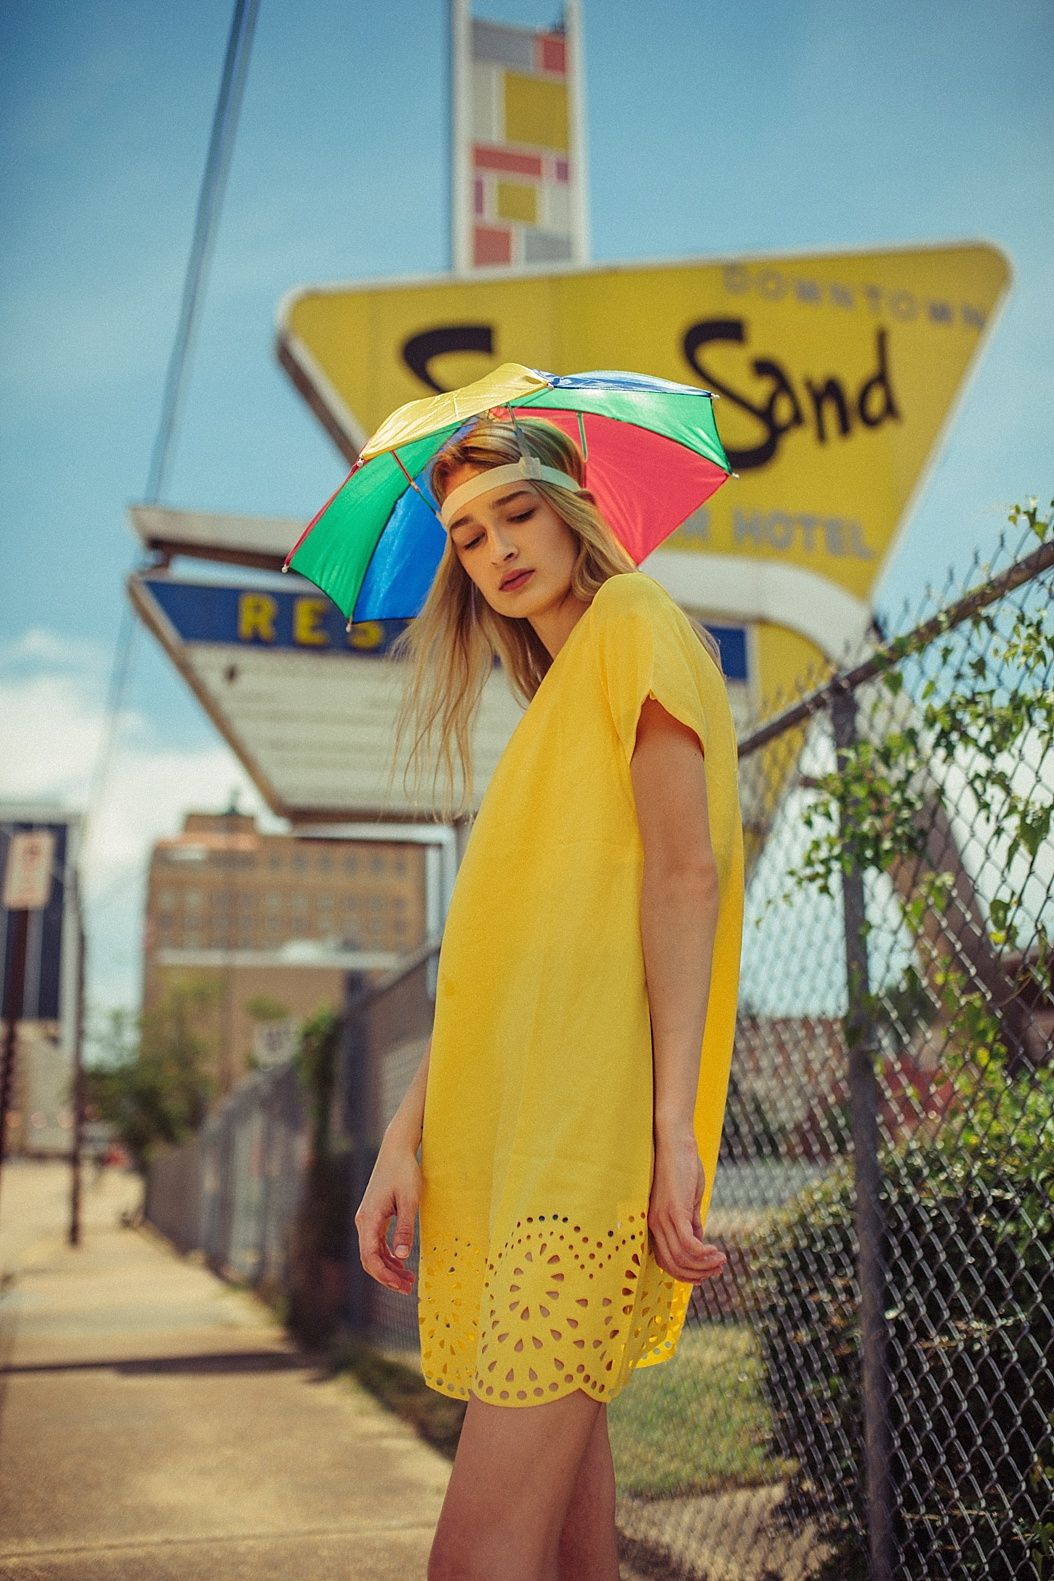 35cccaf6fdbed High Fashion Model Umbrella hat Photoshoot    Canon 5D Mark III Sigma Art  35mm 1.4 lens Yellow Dress by  RomWE Sun   Sand Motel   Restaurant